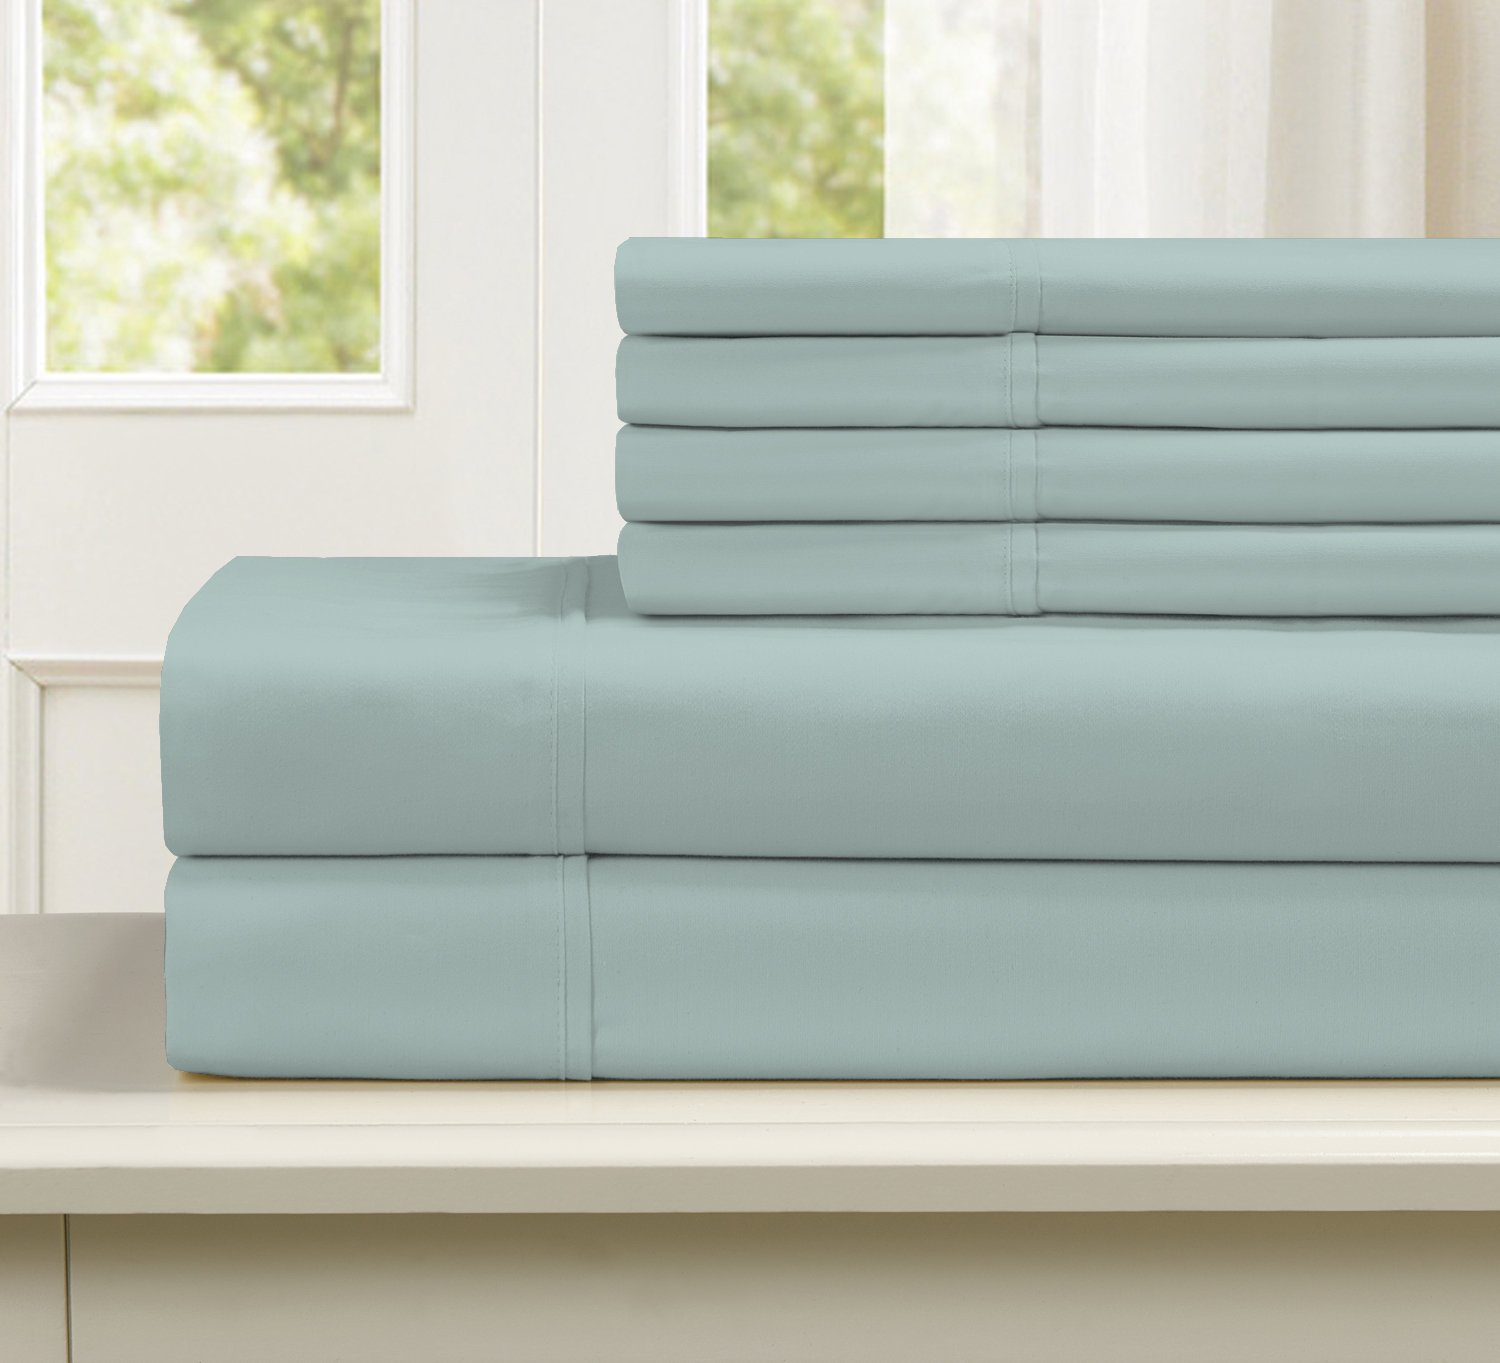 Blissful Living 800 Thread Count Cotton Rich 4-6 Piece Sheet Set - Includes Extra Pillowcase(S)! Super Soft, Hotel Quality Luxury (King, Aqua) - COMFORTABLE AND DURABLE: Our 800 thread count sheets are made with 55% Cotton and 45% Polyester, the cotton is breathable, durable and grows softer over time. We mixed in the polyester because it helps give the sheets a crisp smooth feel. GREAT VALUE: Get the exceptional feel of cotton sheets without breaking the bank and not compromising quality at the same time. COMPLETE SHEET SETS + EXTRA PILLOWCASE(S): Twin set includes 1 fitted sheet, 1 flat sheet and 2 standard pillowcases. Full and Queen size includes 1 fitted sheet, 1 flat sheet and 4 standard Pillowcases. King Size includes 1 fitted sheet, 1 flat sheet and 4 King size pillowcases. - sheet-sets, bedroom-sheets-comforters, bedroom - 71sjejG6E9L -